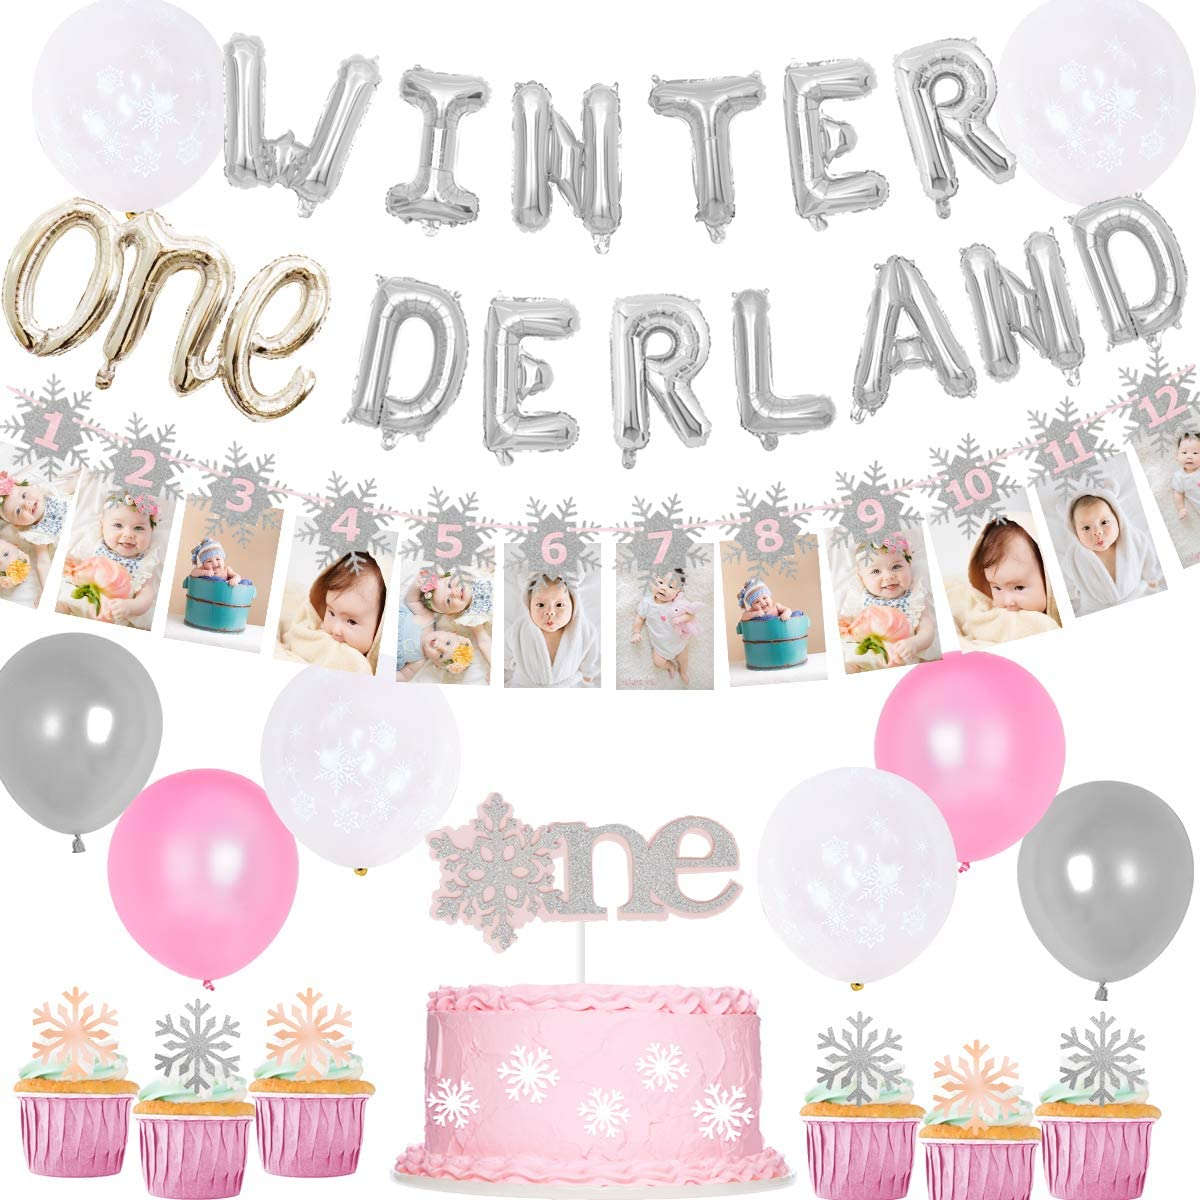 Winter Onederland Birthday Decorations for Princess Winter 1st Birthday Pink, Snowflake Photo Banner Balloons for Girls First Birthday Party Supplies